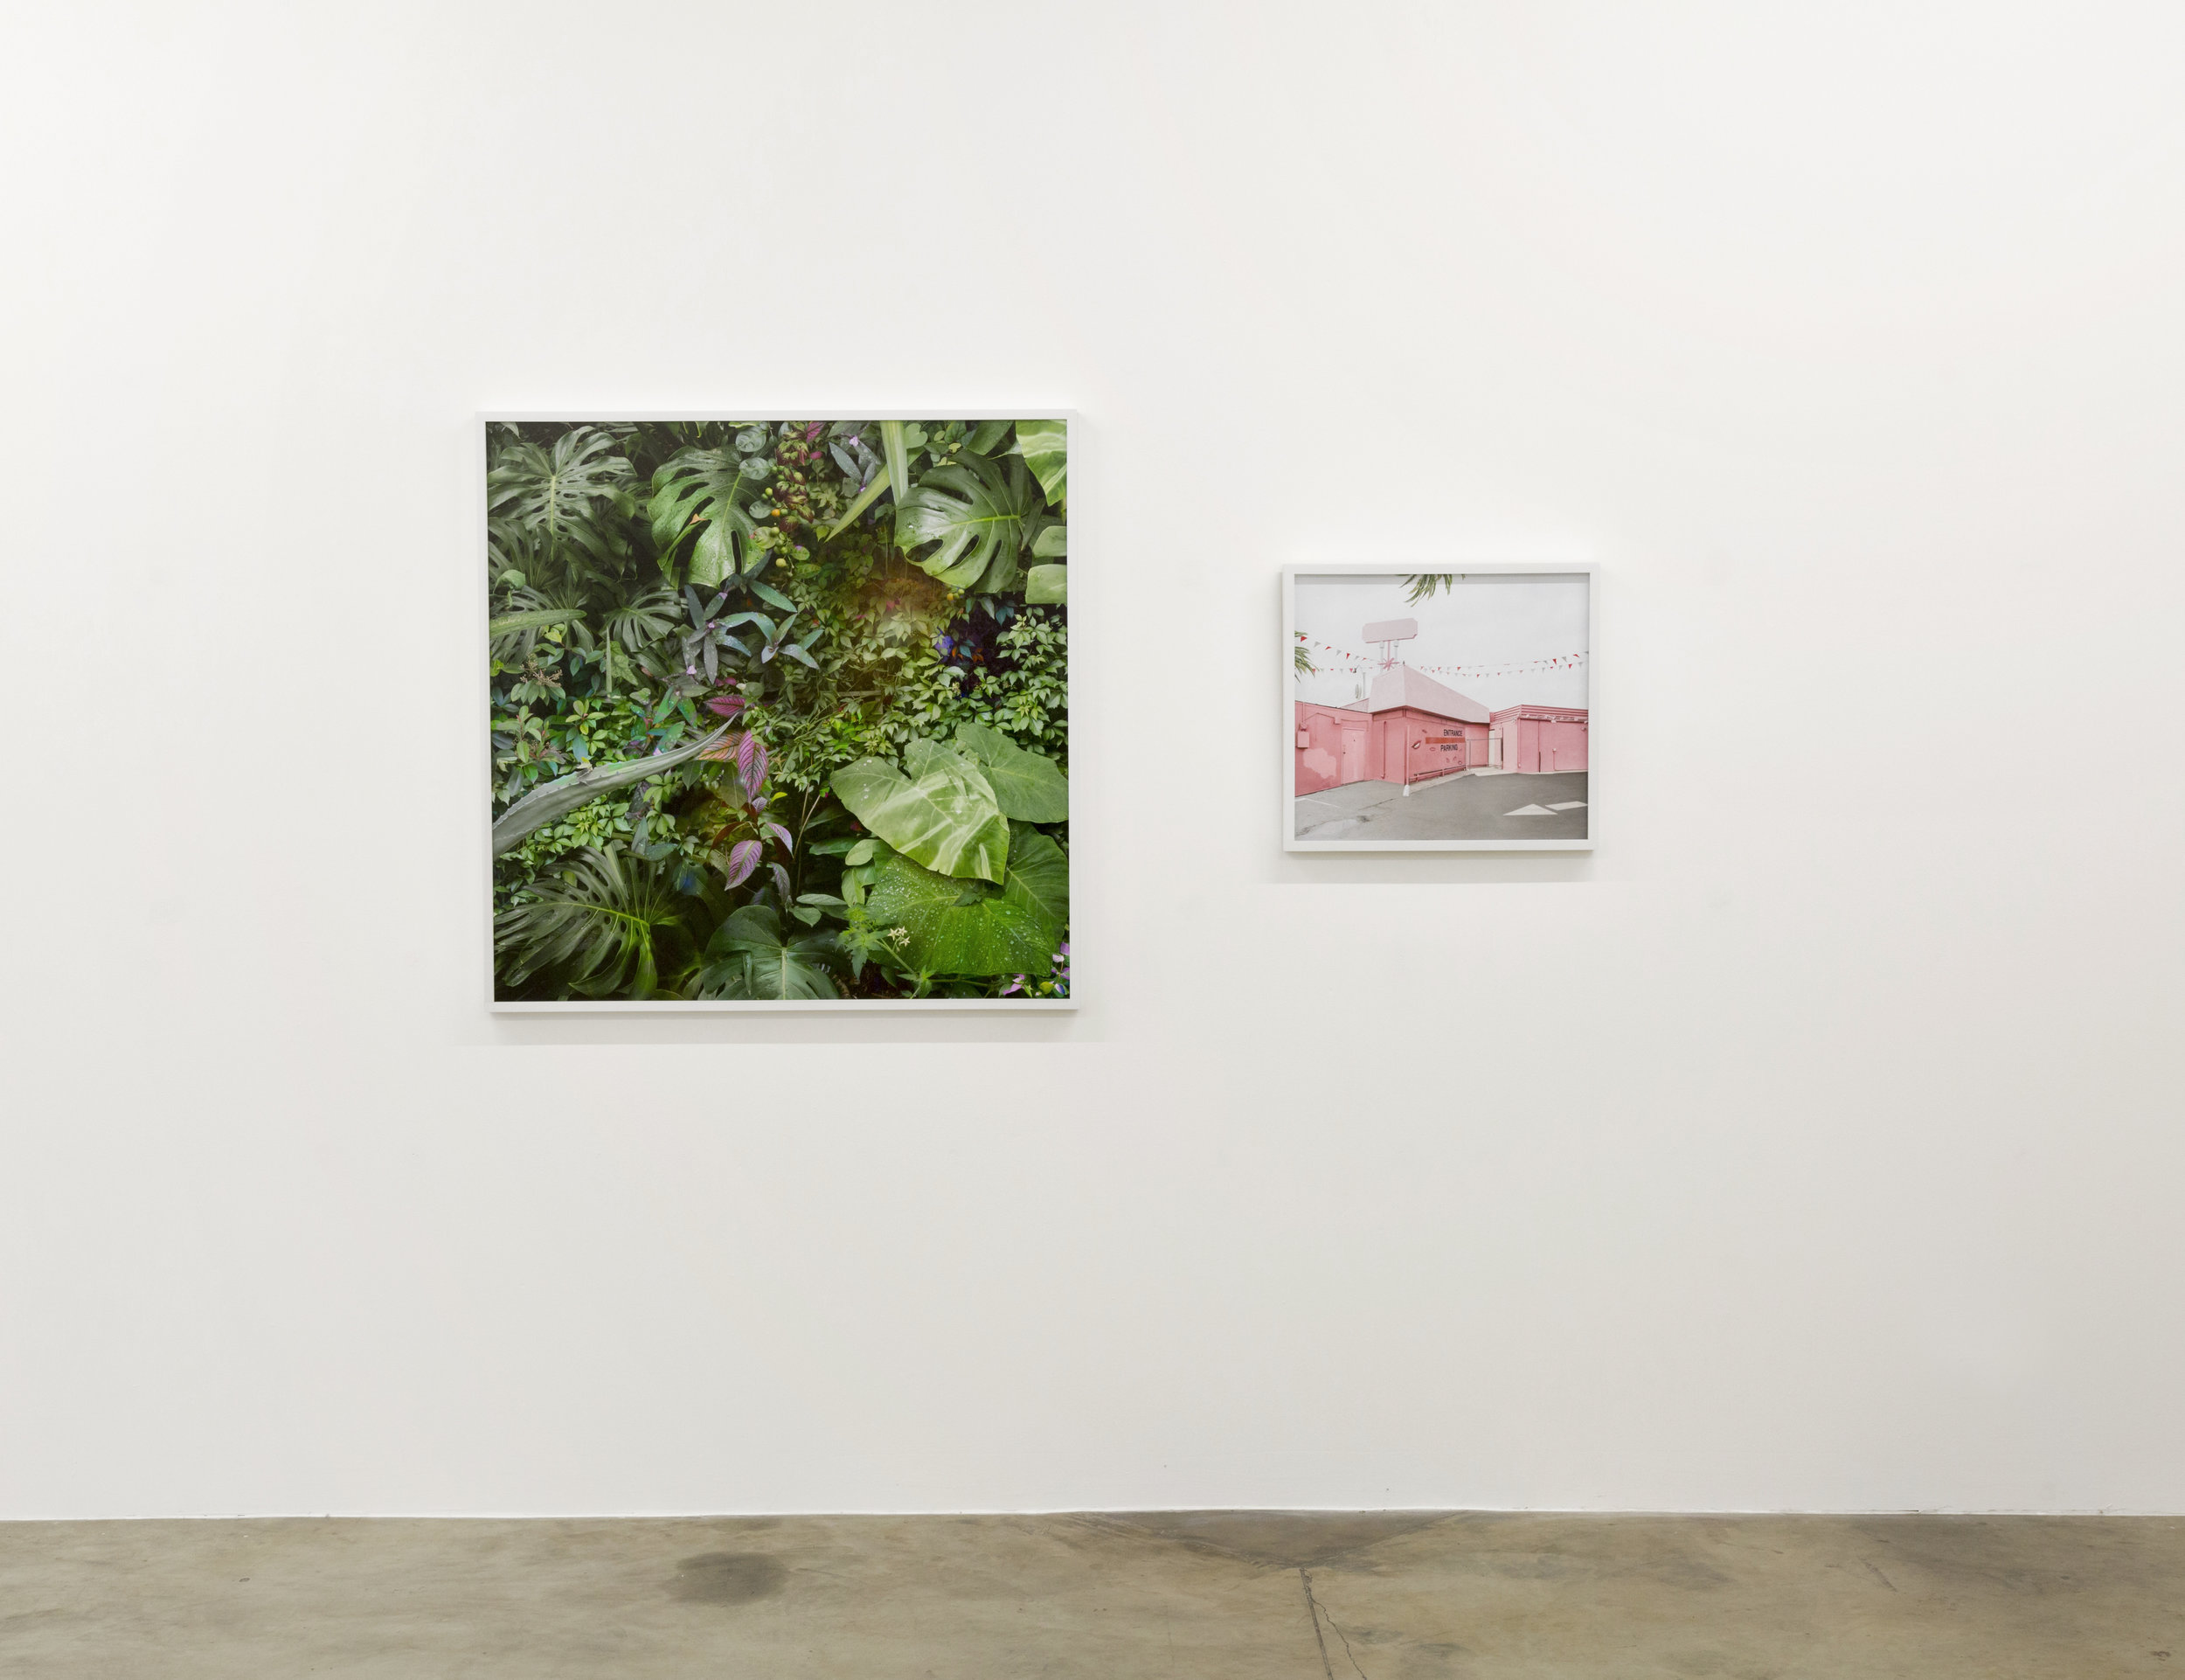 Installation View,  This Place  exhibition at the Liliana Bloch Gallery, Dallas, TX, 2016